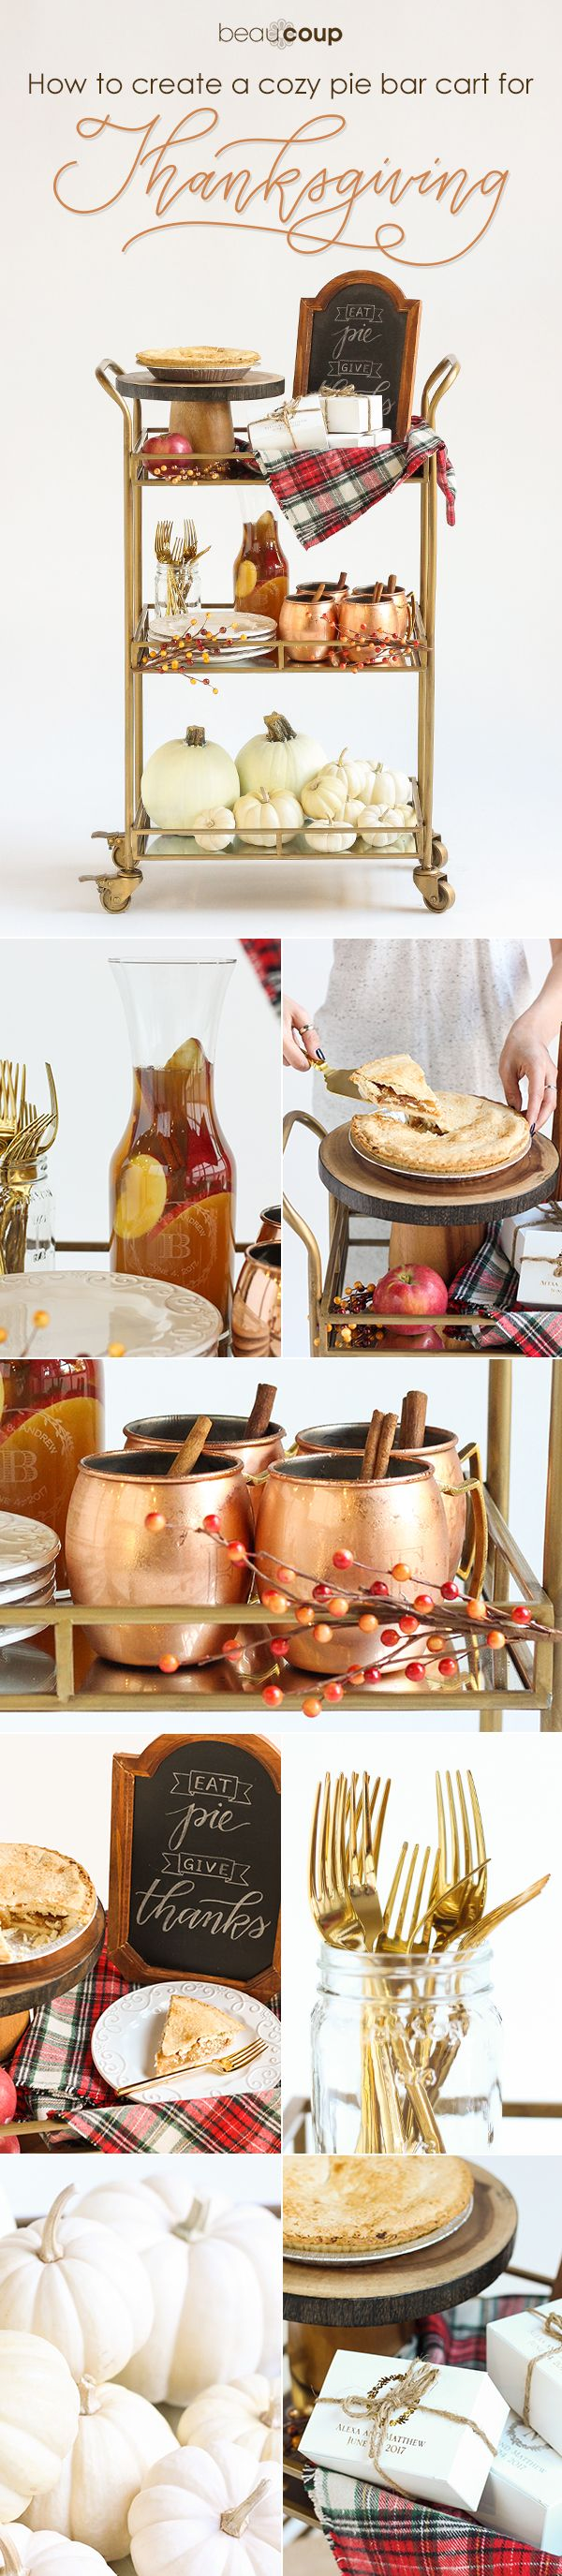 Celebrate Thanksgiving in the perfect fashion - with a pie bar cart! Get inspired to style your Thanksgiving bar cart with copper, pie and pumpkins! Read the blog to find all the inspiration you need